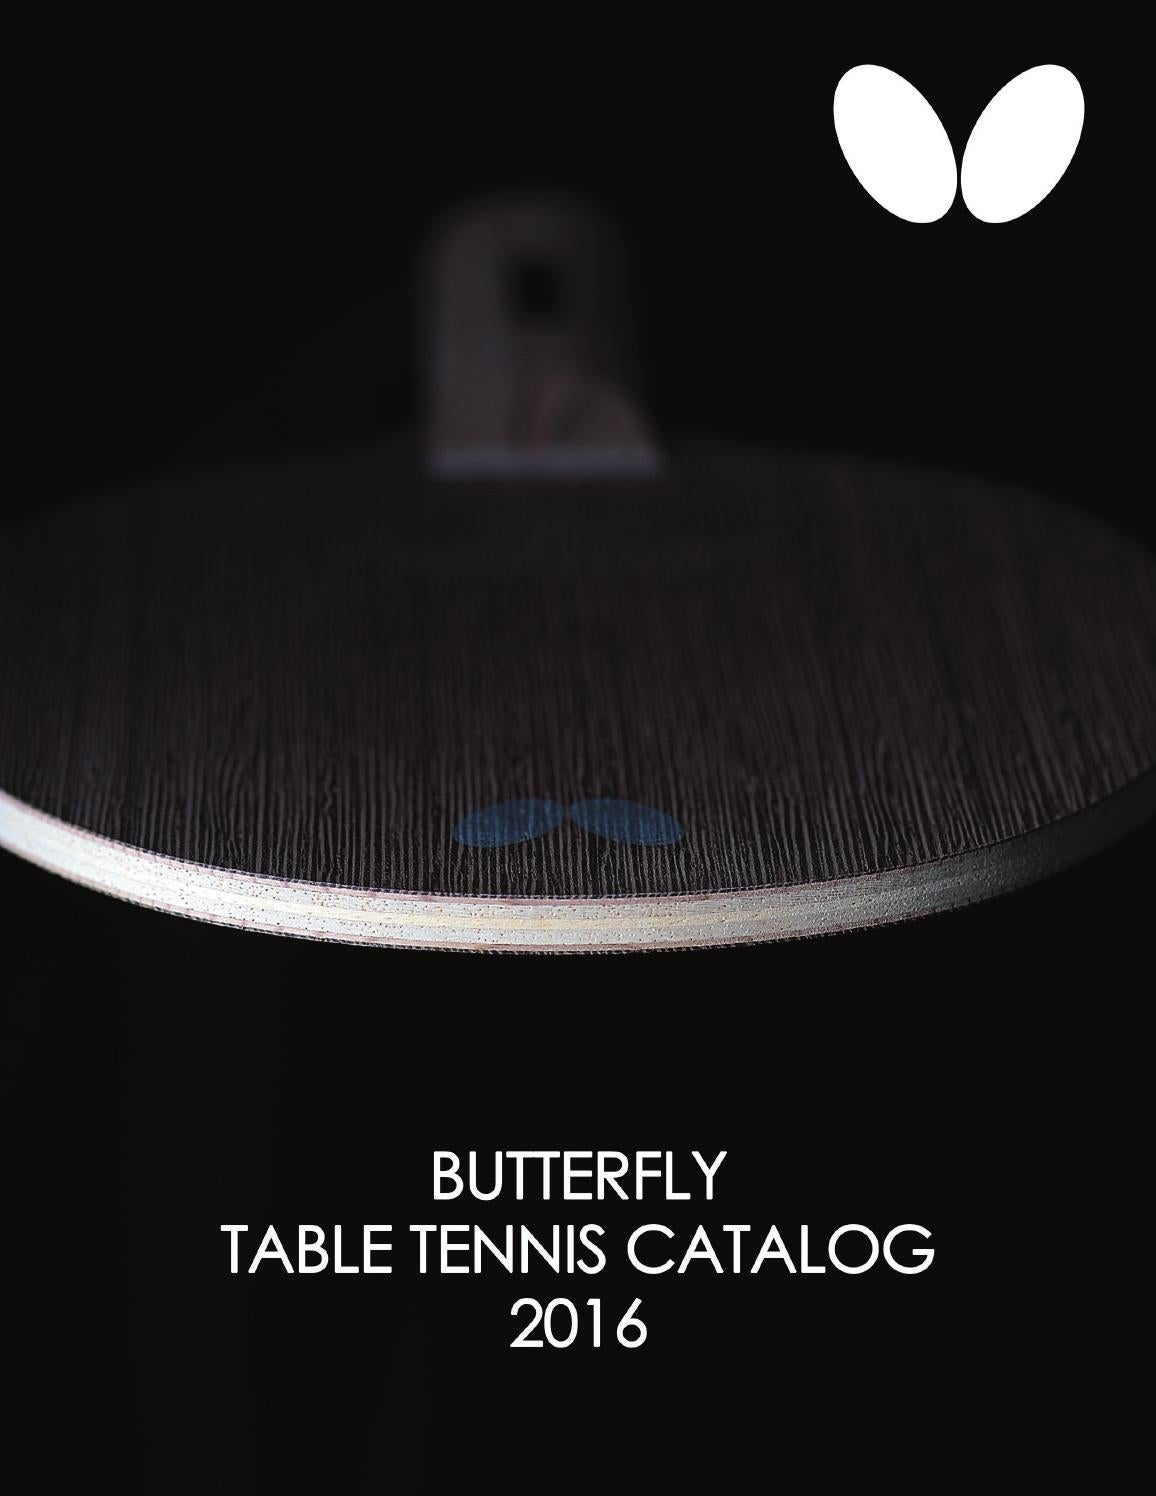 Butterfly Table Tennis Catalog 2016 by Bowmar Sports Issuu